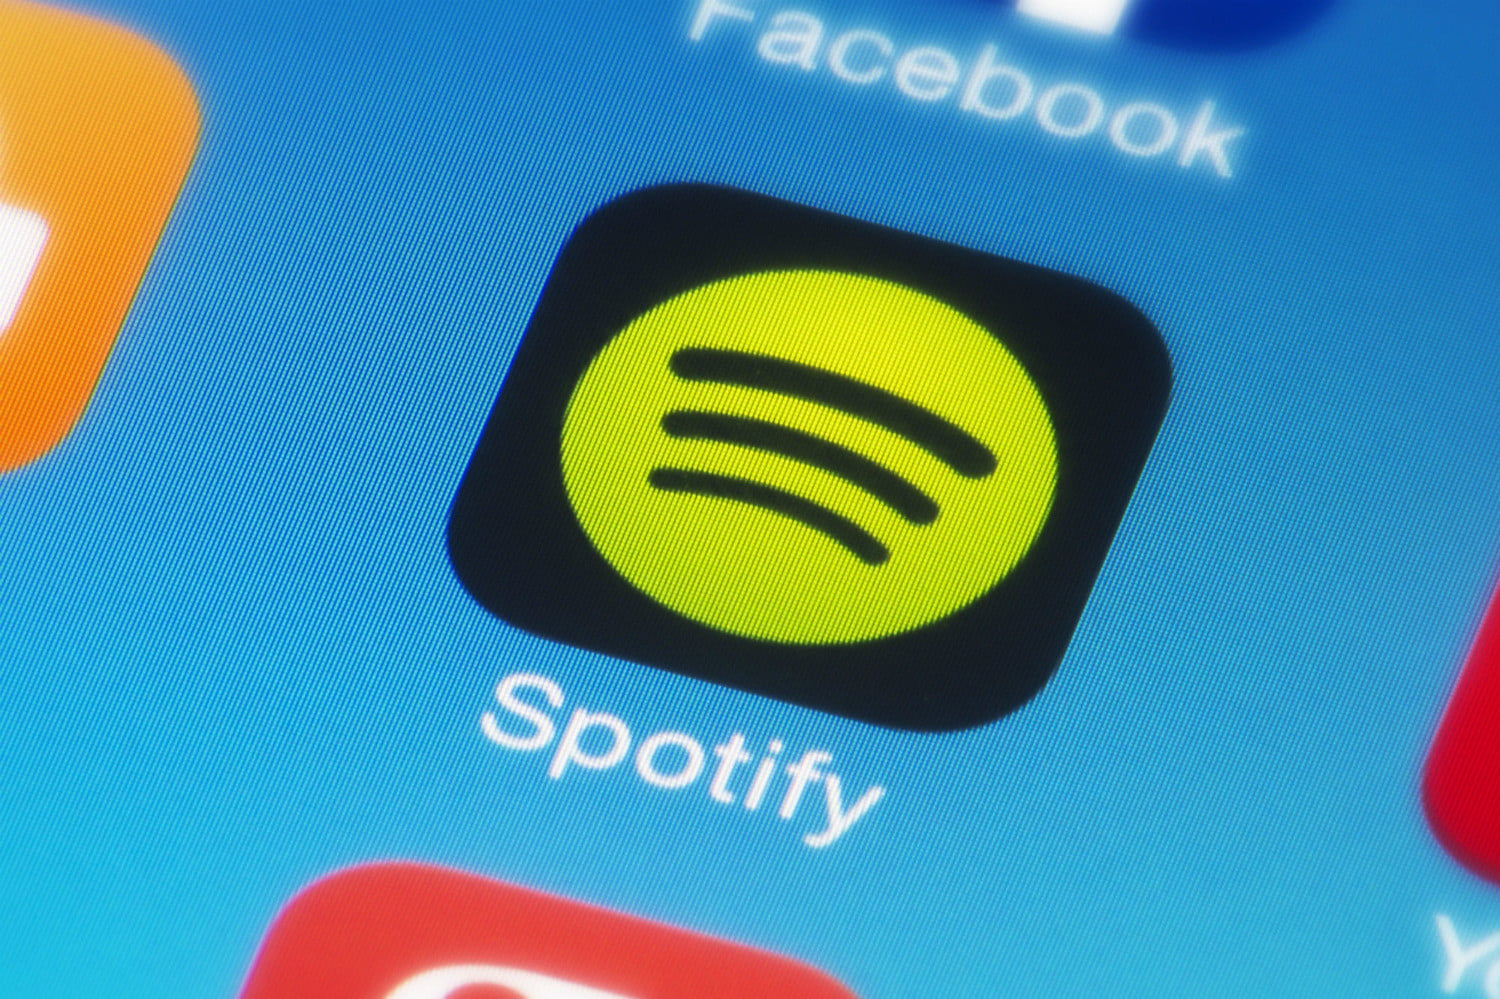 How Much is Spotify Premium, and How Can You Get It at a